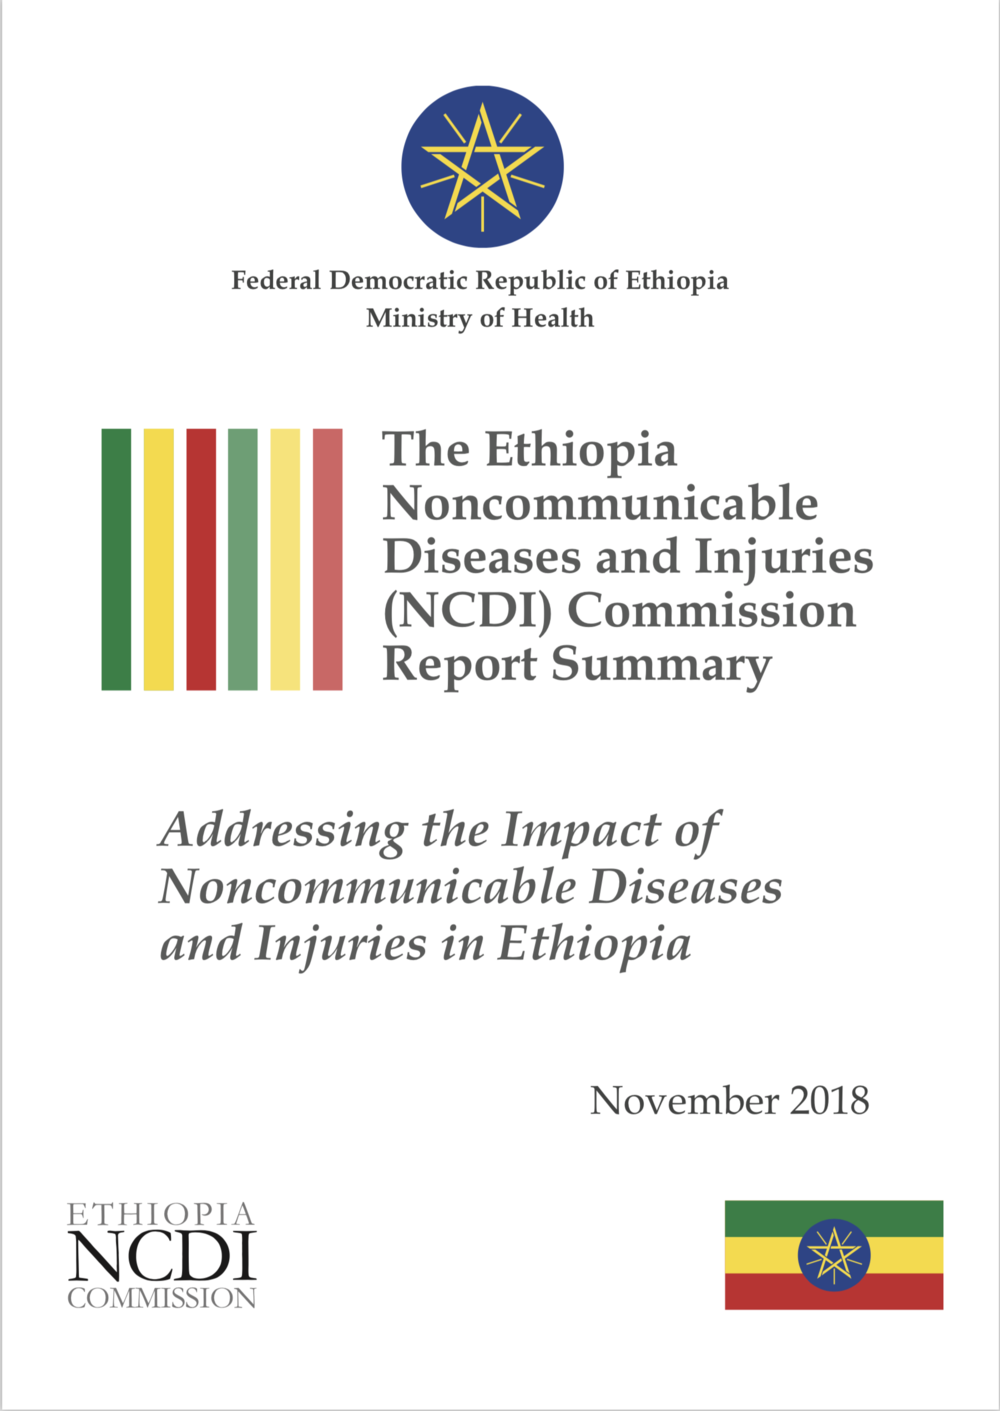 Ethiopia NCDI Commission Report Summary FINAL.png